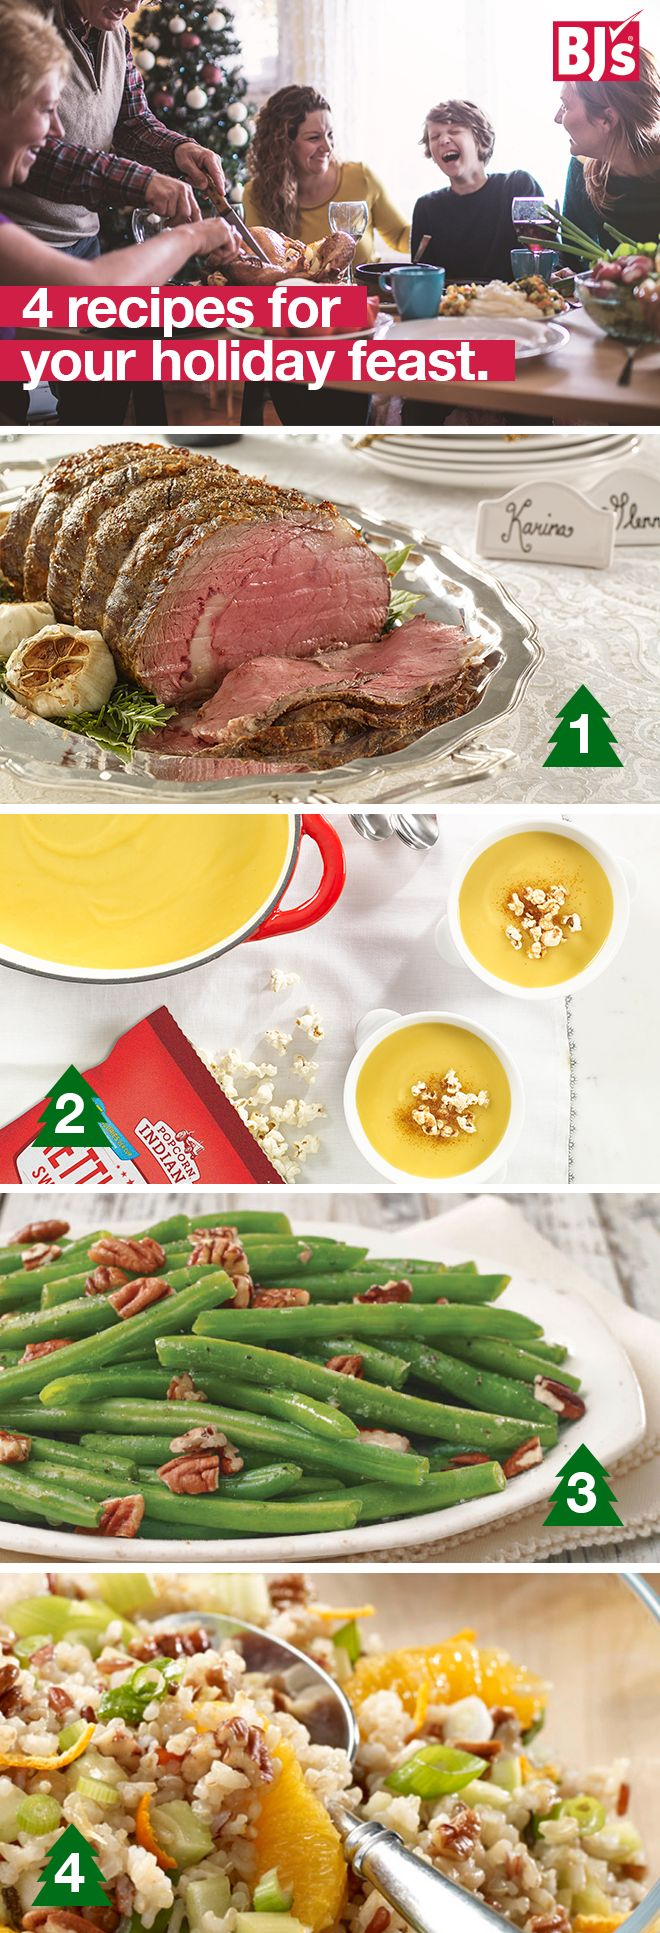 Whether you are hosting a holiday get-together or just looking for some new ideas for your family meal, these recipes are a great solution: http://stocked.bjs.com/food/spread-holiday-cheer-chef-glenn. The main course and sides are the perfect combination of simple, delicious and crowd-pleasing.